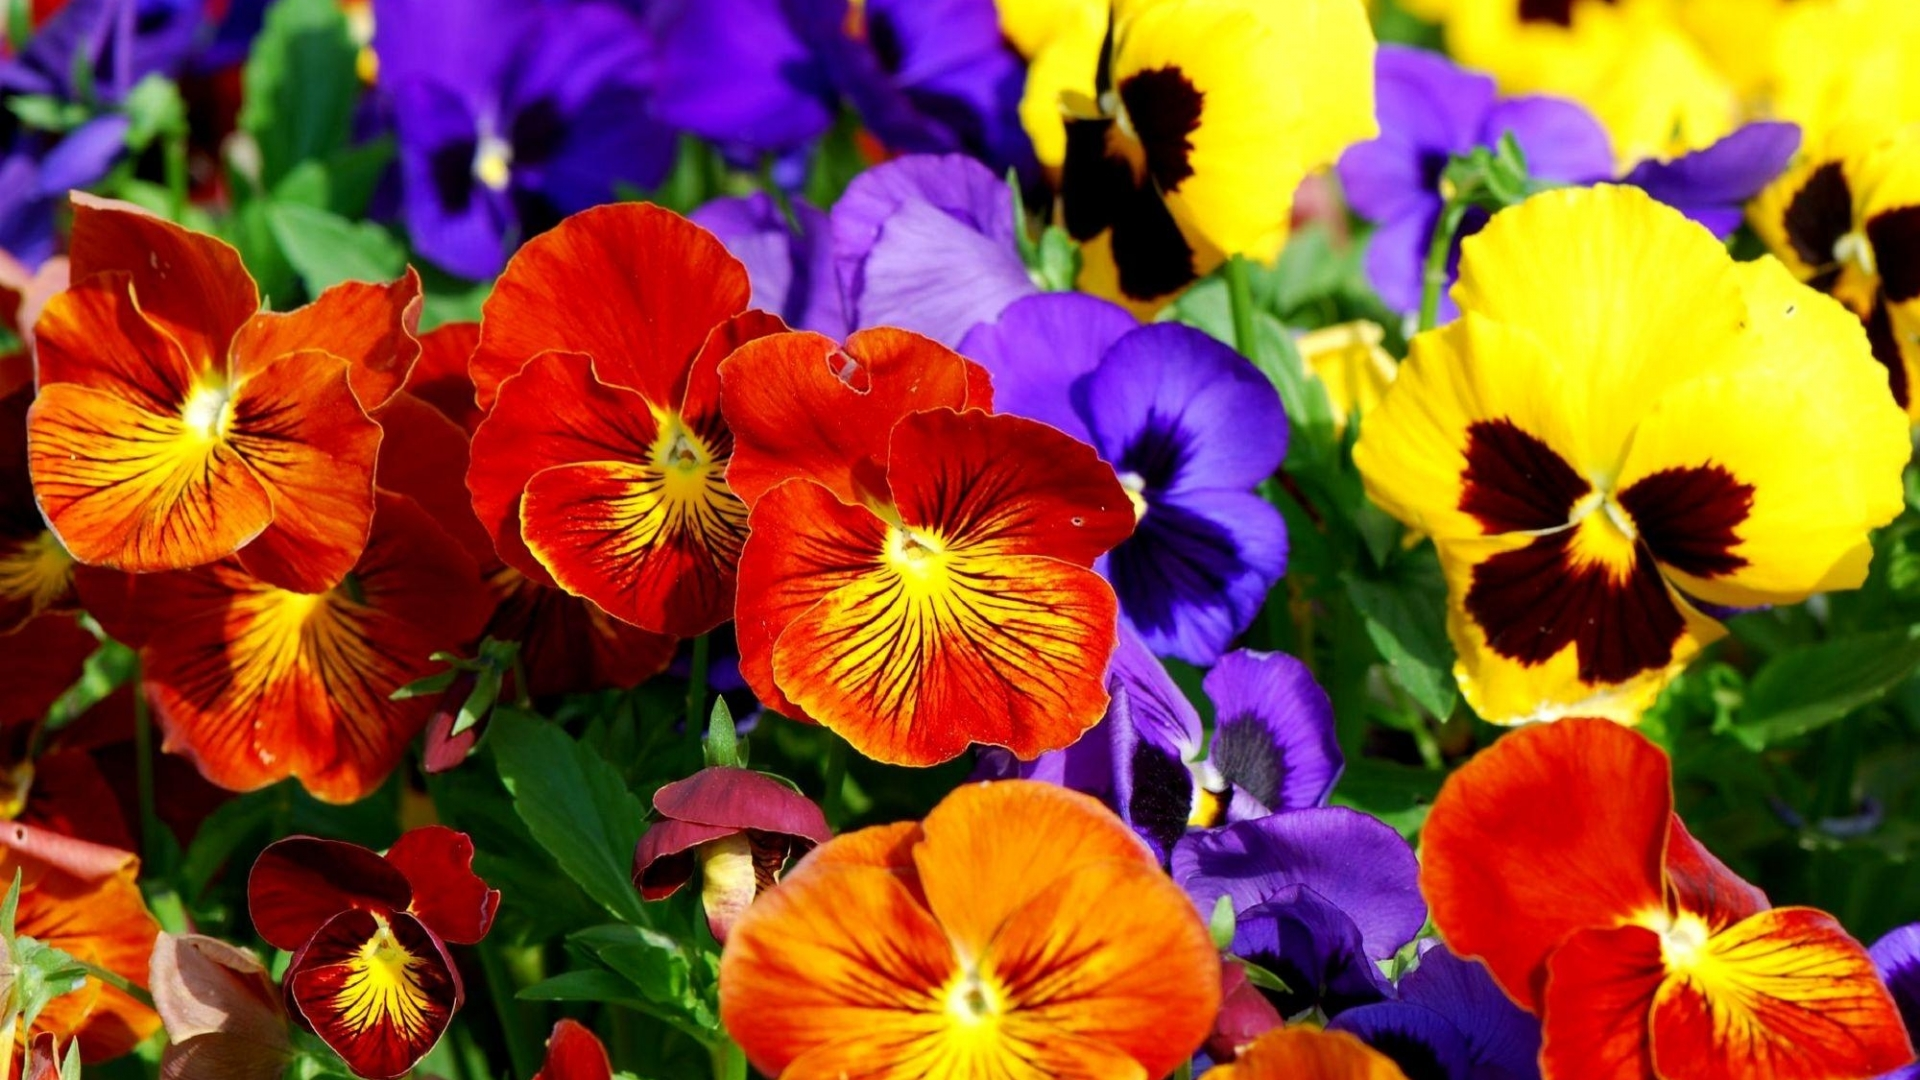 Colorful Pansies Full HD Wallpaper and Background Image | 1920x1080 ...